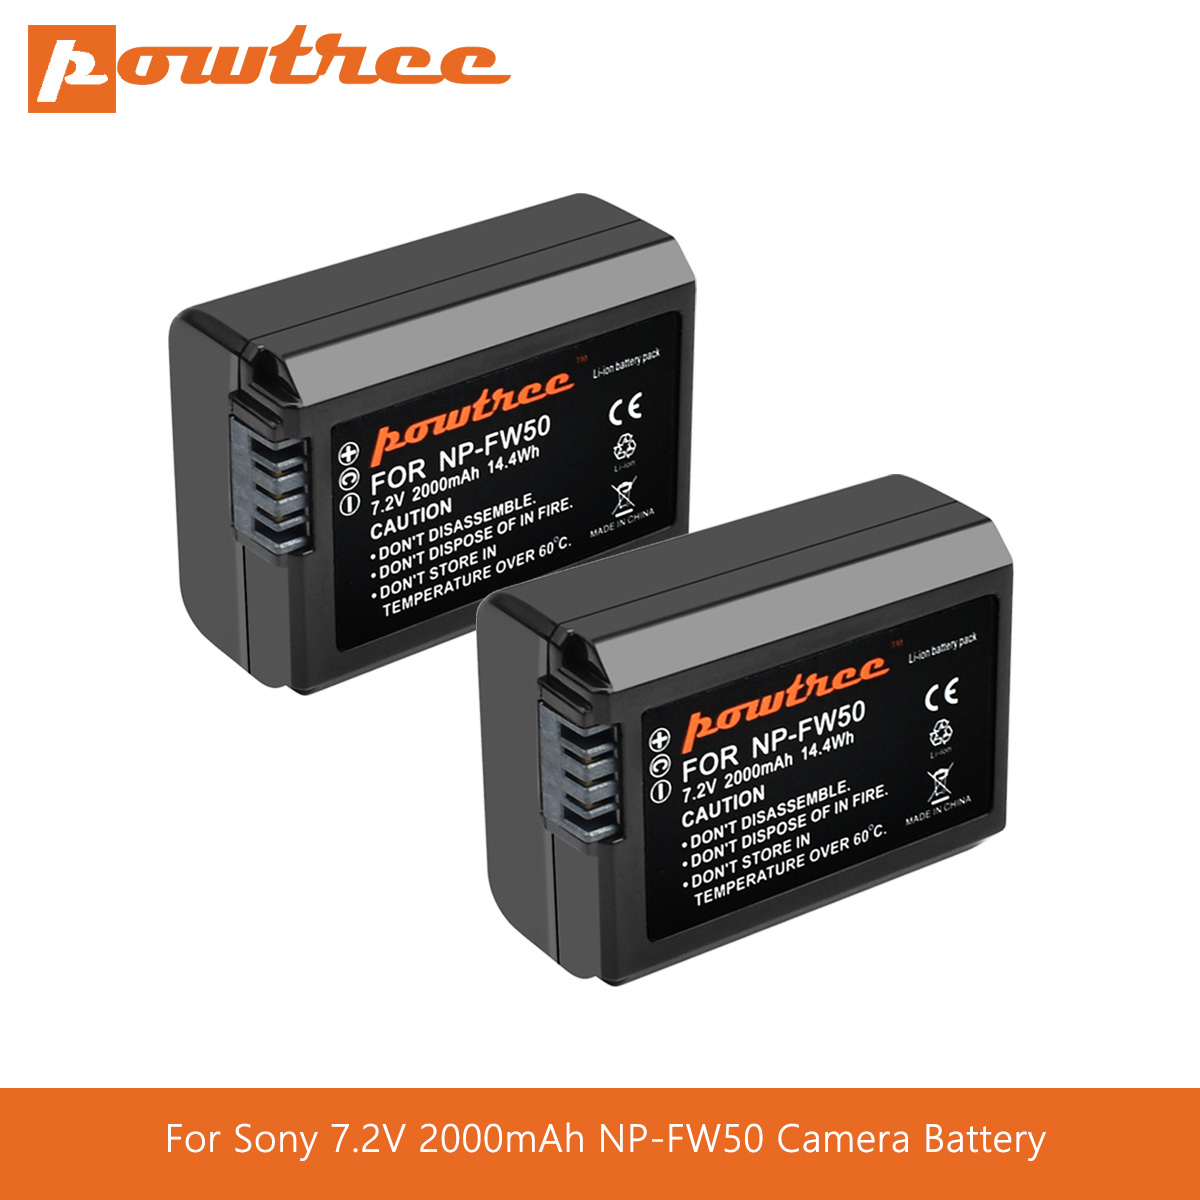 Powtree For <font><b>Sony</b></font> 7.2V 2000mAh NP-FW50 NPFW50 NP FW50 Camera Battery For <font><b>Alpha</b></font> 6500 6300 6000 <font><b>5000</b></font> 3000 a7R a7S a7S II a7II L70 image